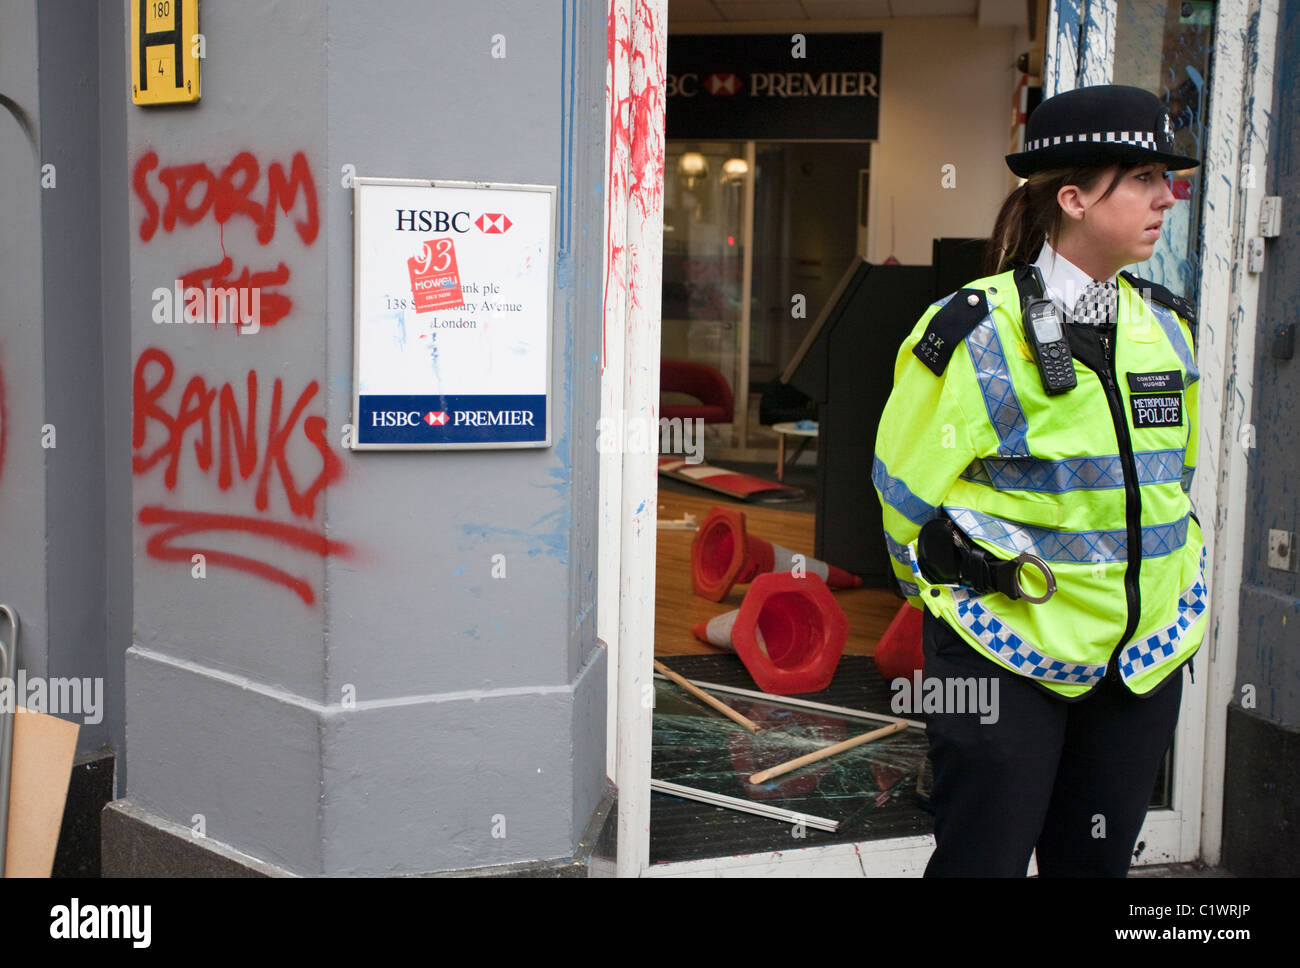 Policewoman stands guard at a branch of HSBC Bank on Cambridge Circus shortly after it was ransacked by Anarchists. - Stock Image